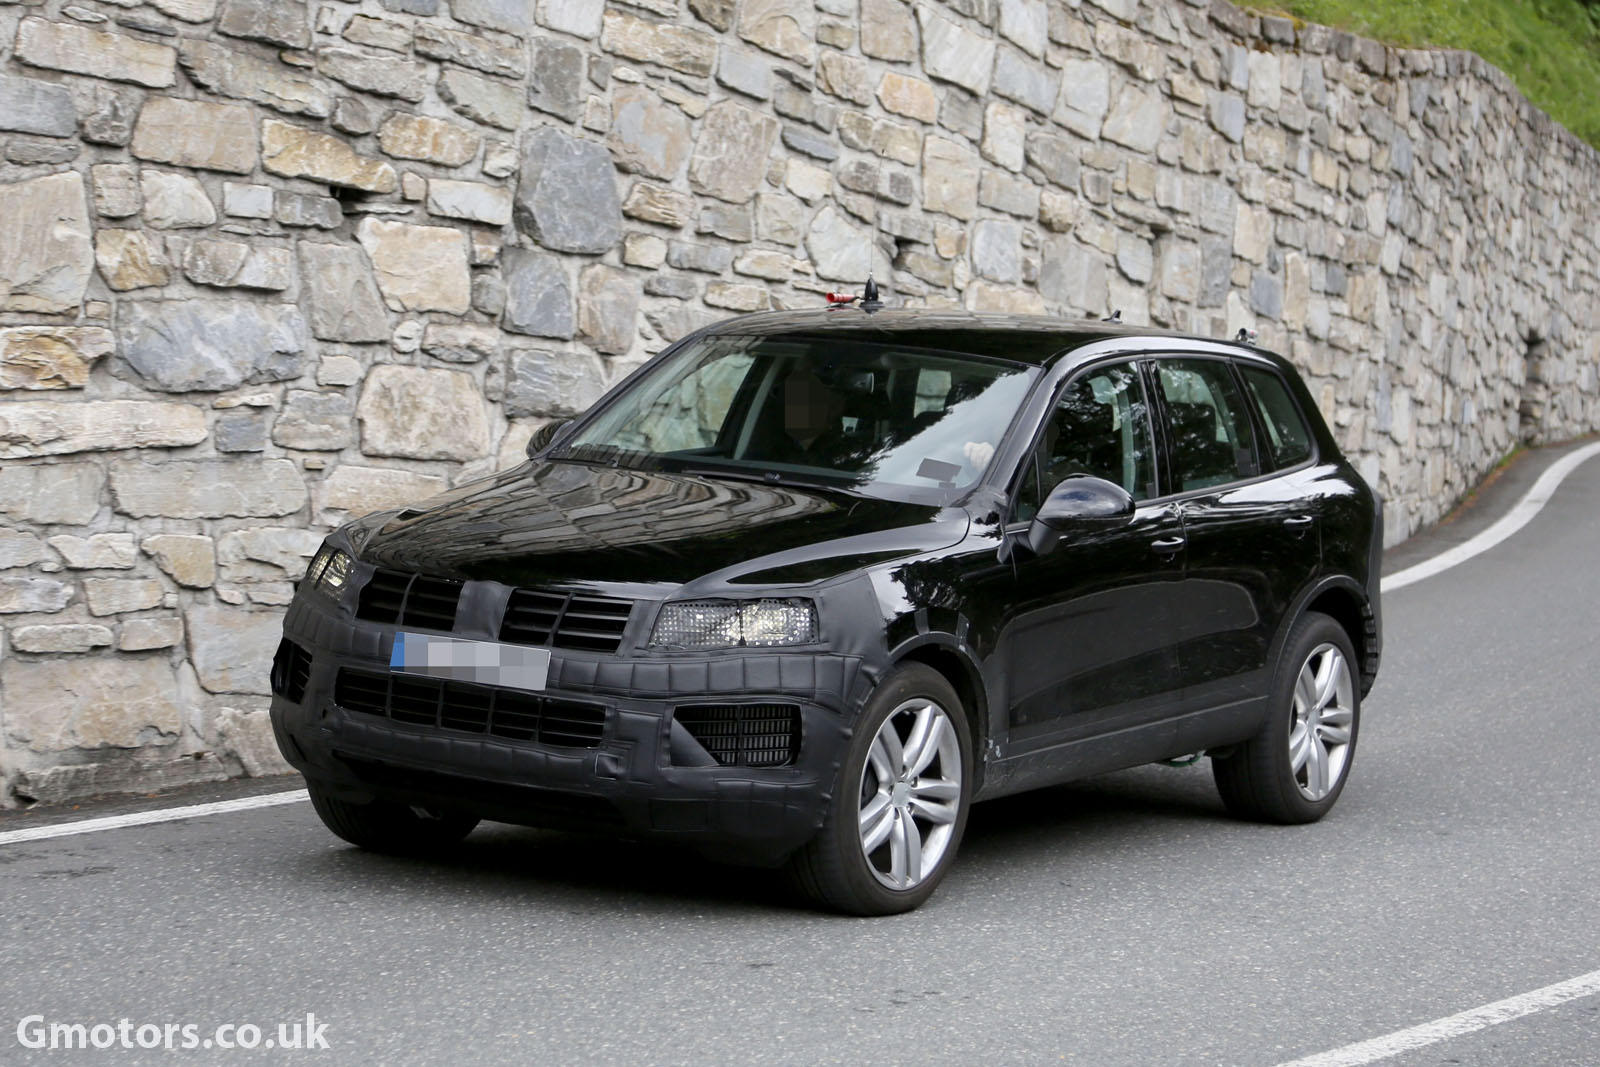 2015 Volkswagen Touareg Facelift Spied Testing In The Alps